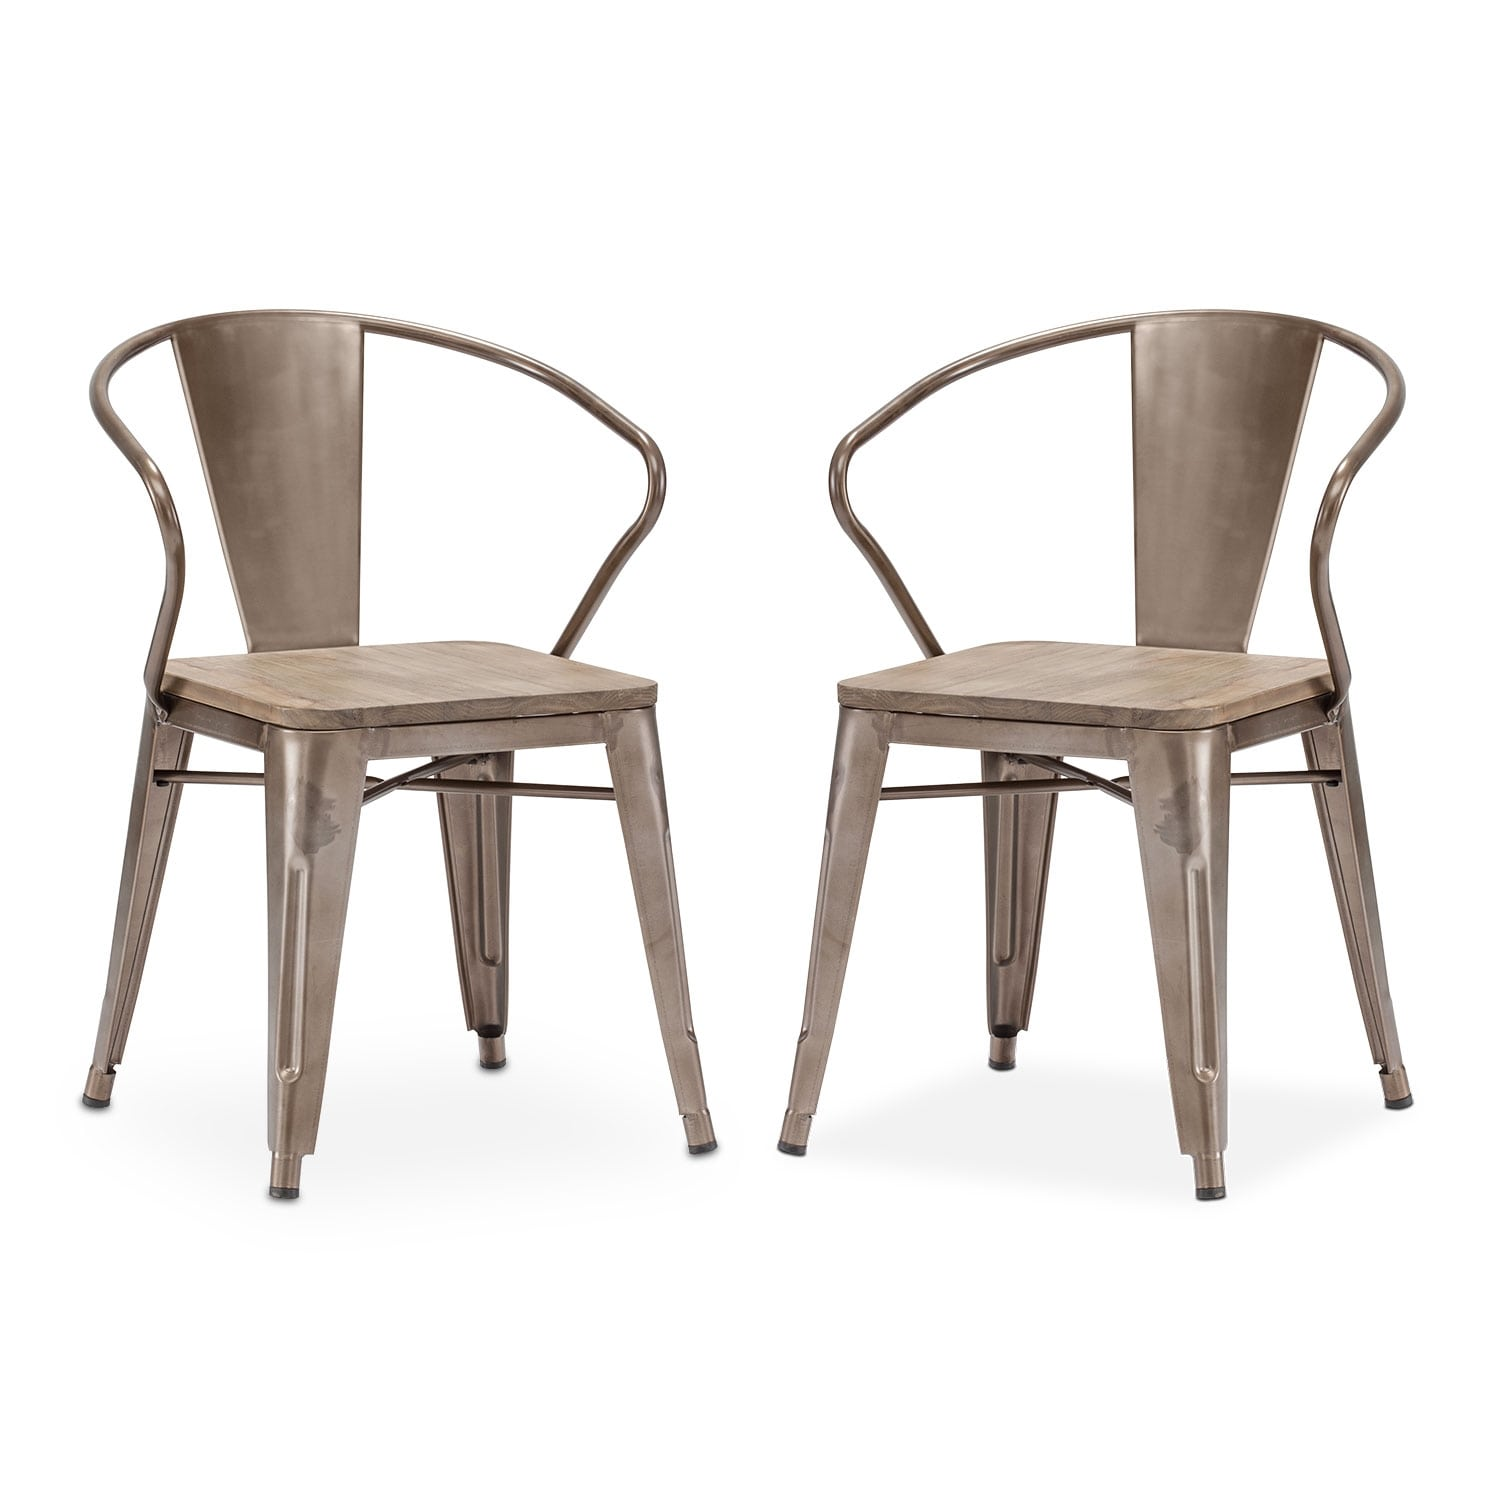 Rustica 2-Pack Arm Chairs - Steel